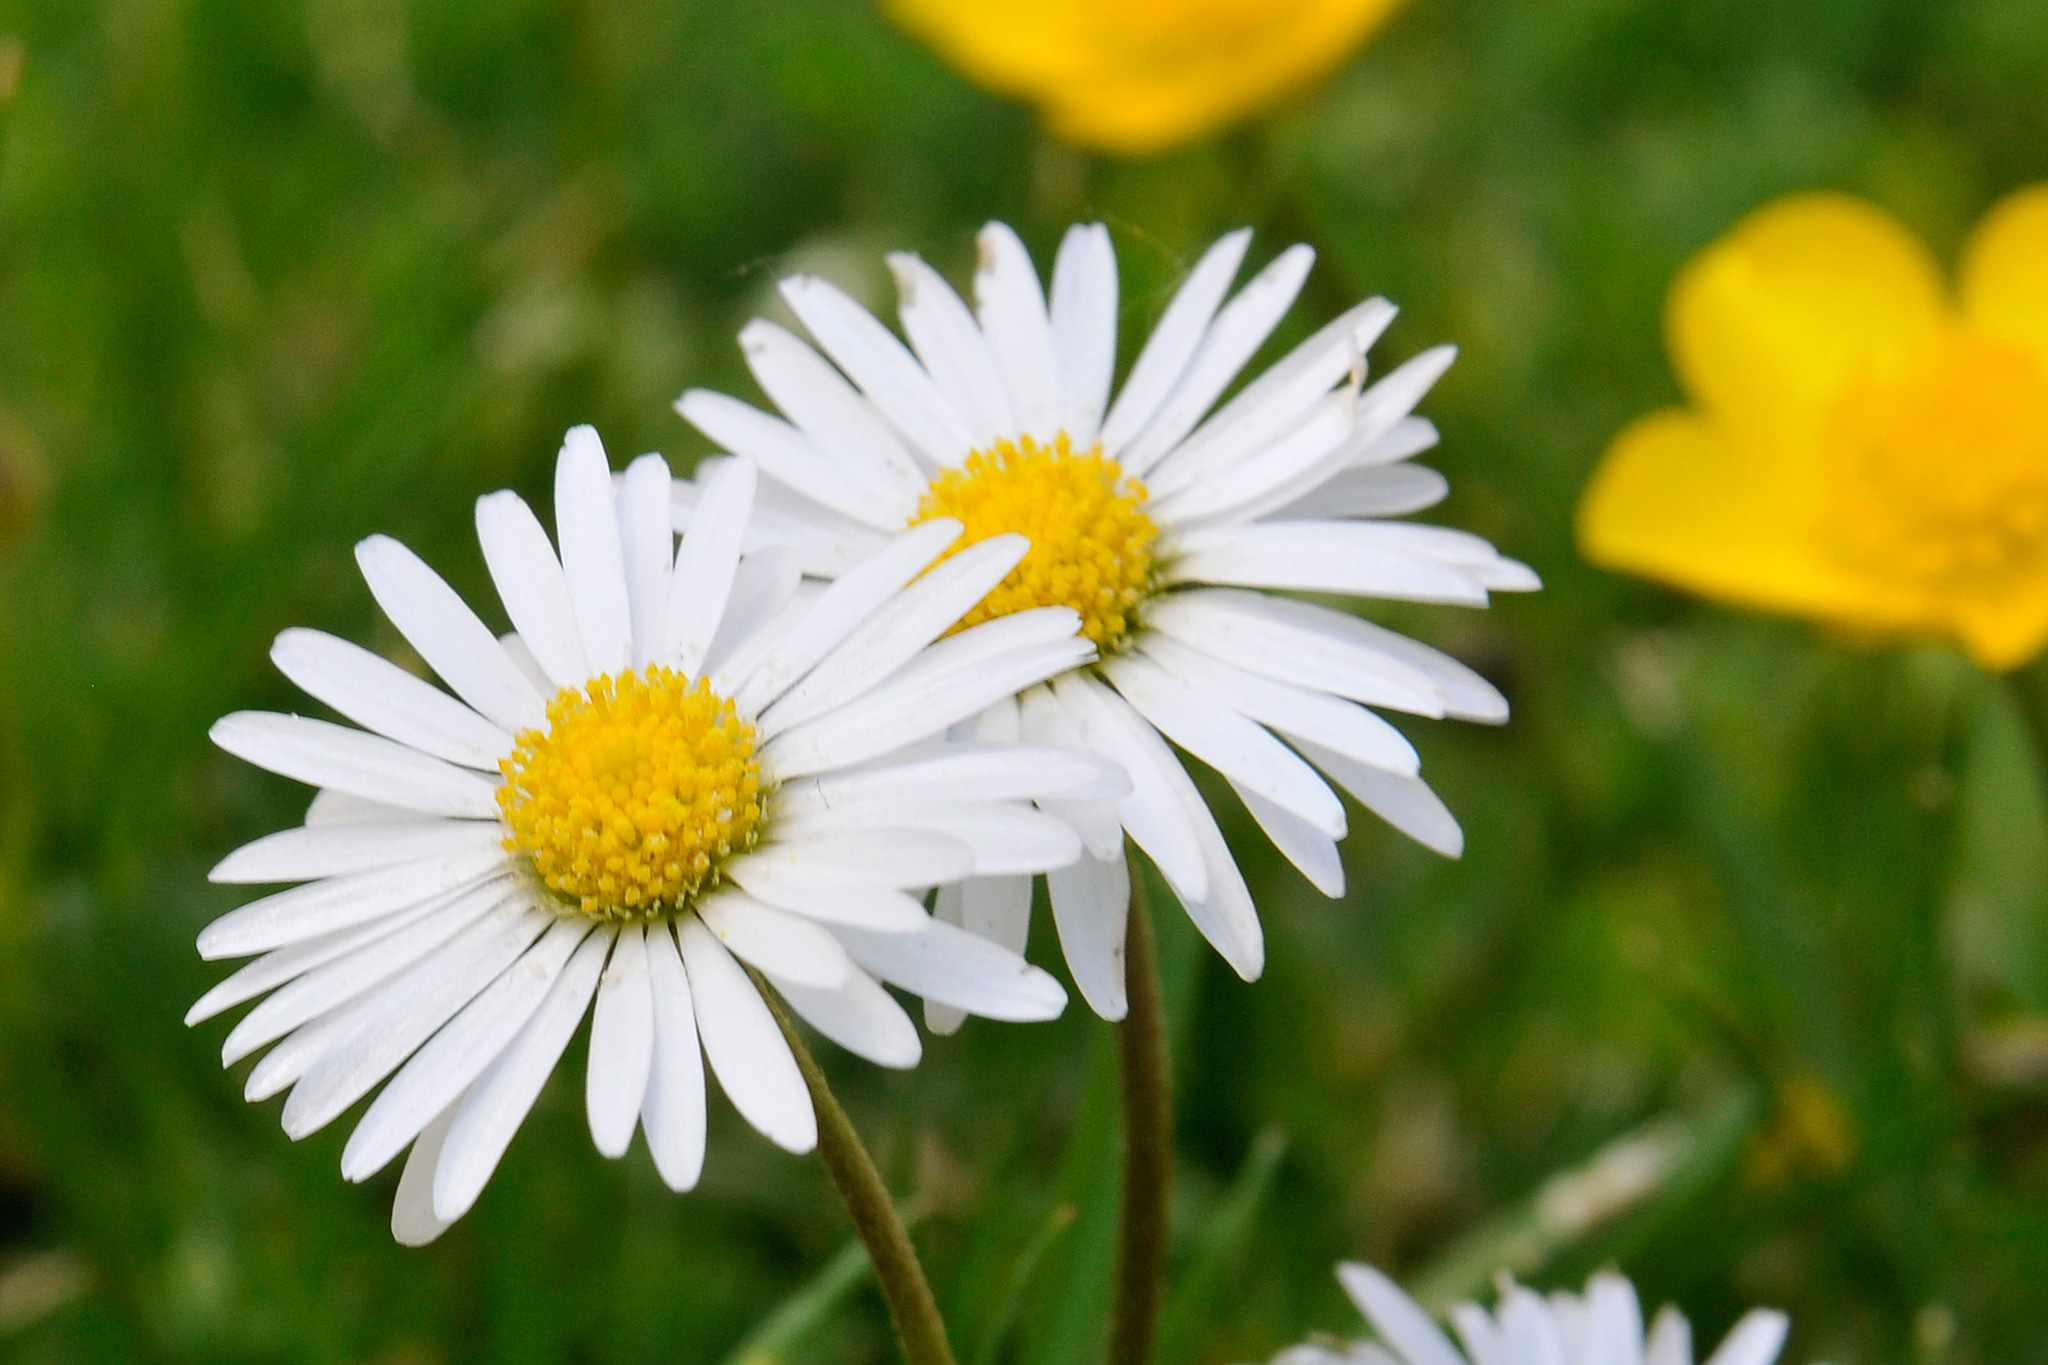 Two white and yellow flowers of the common daisy